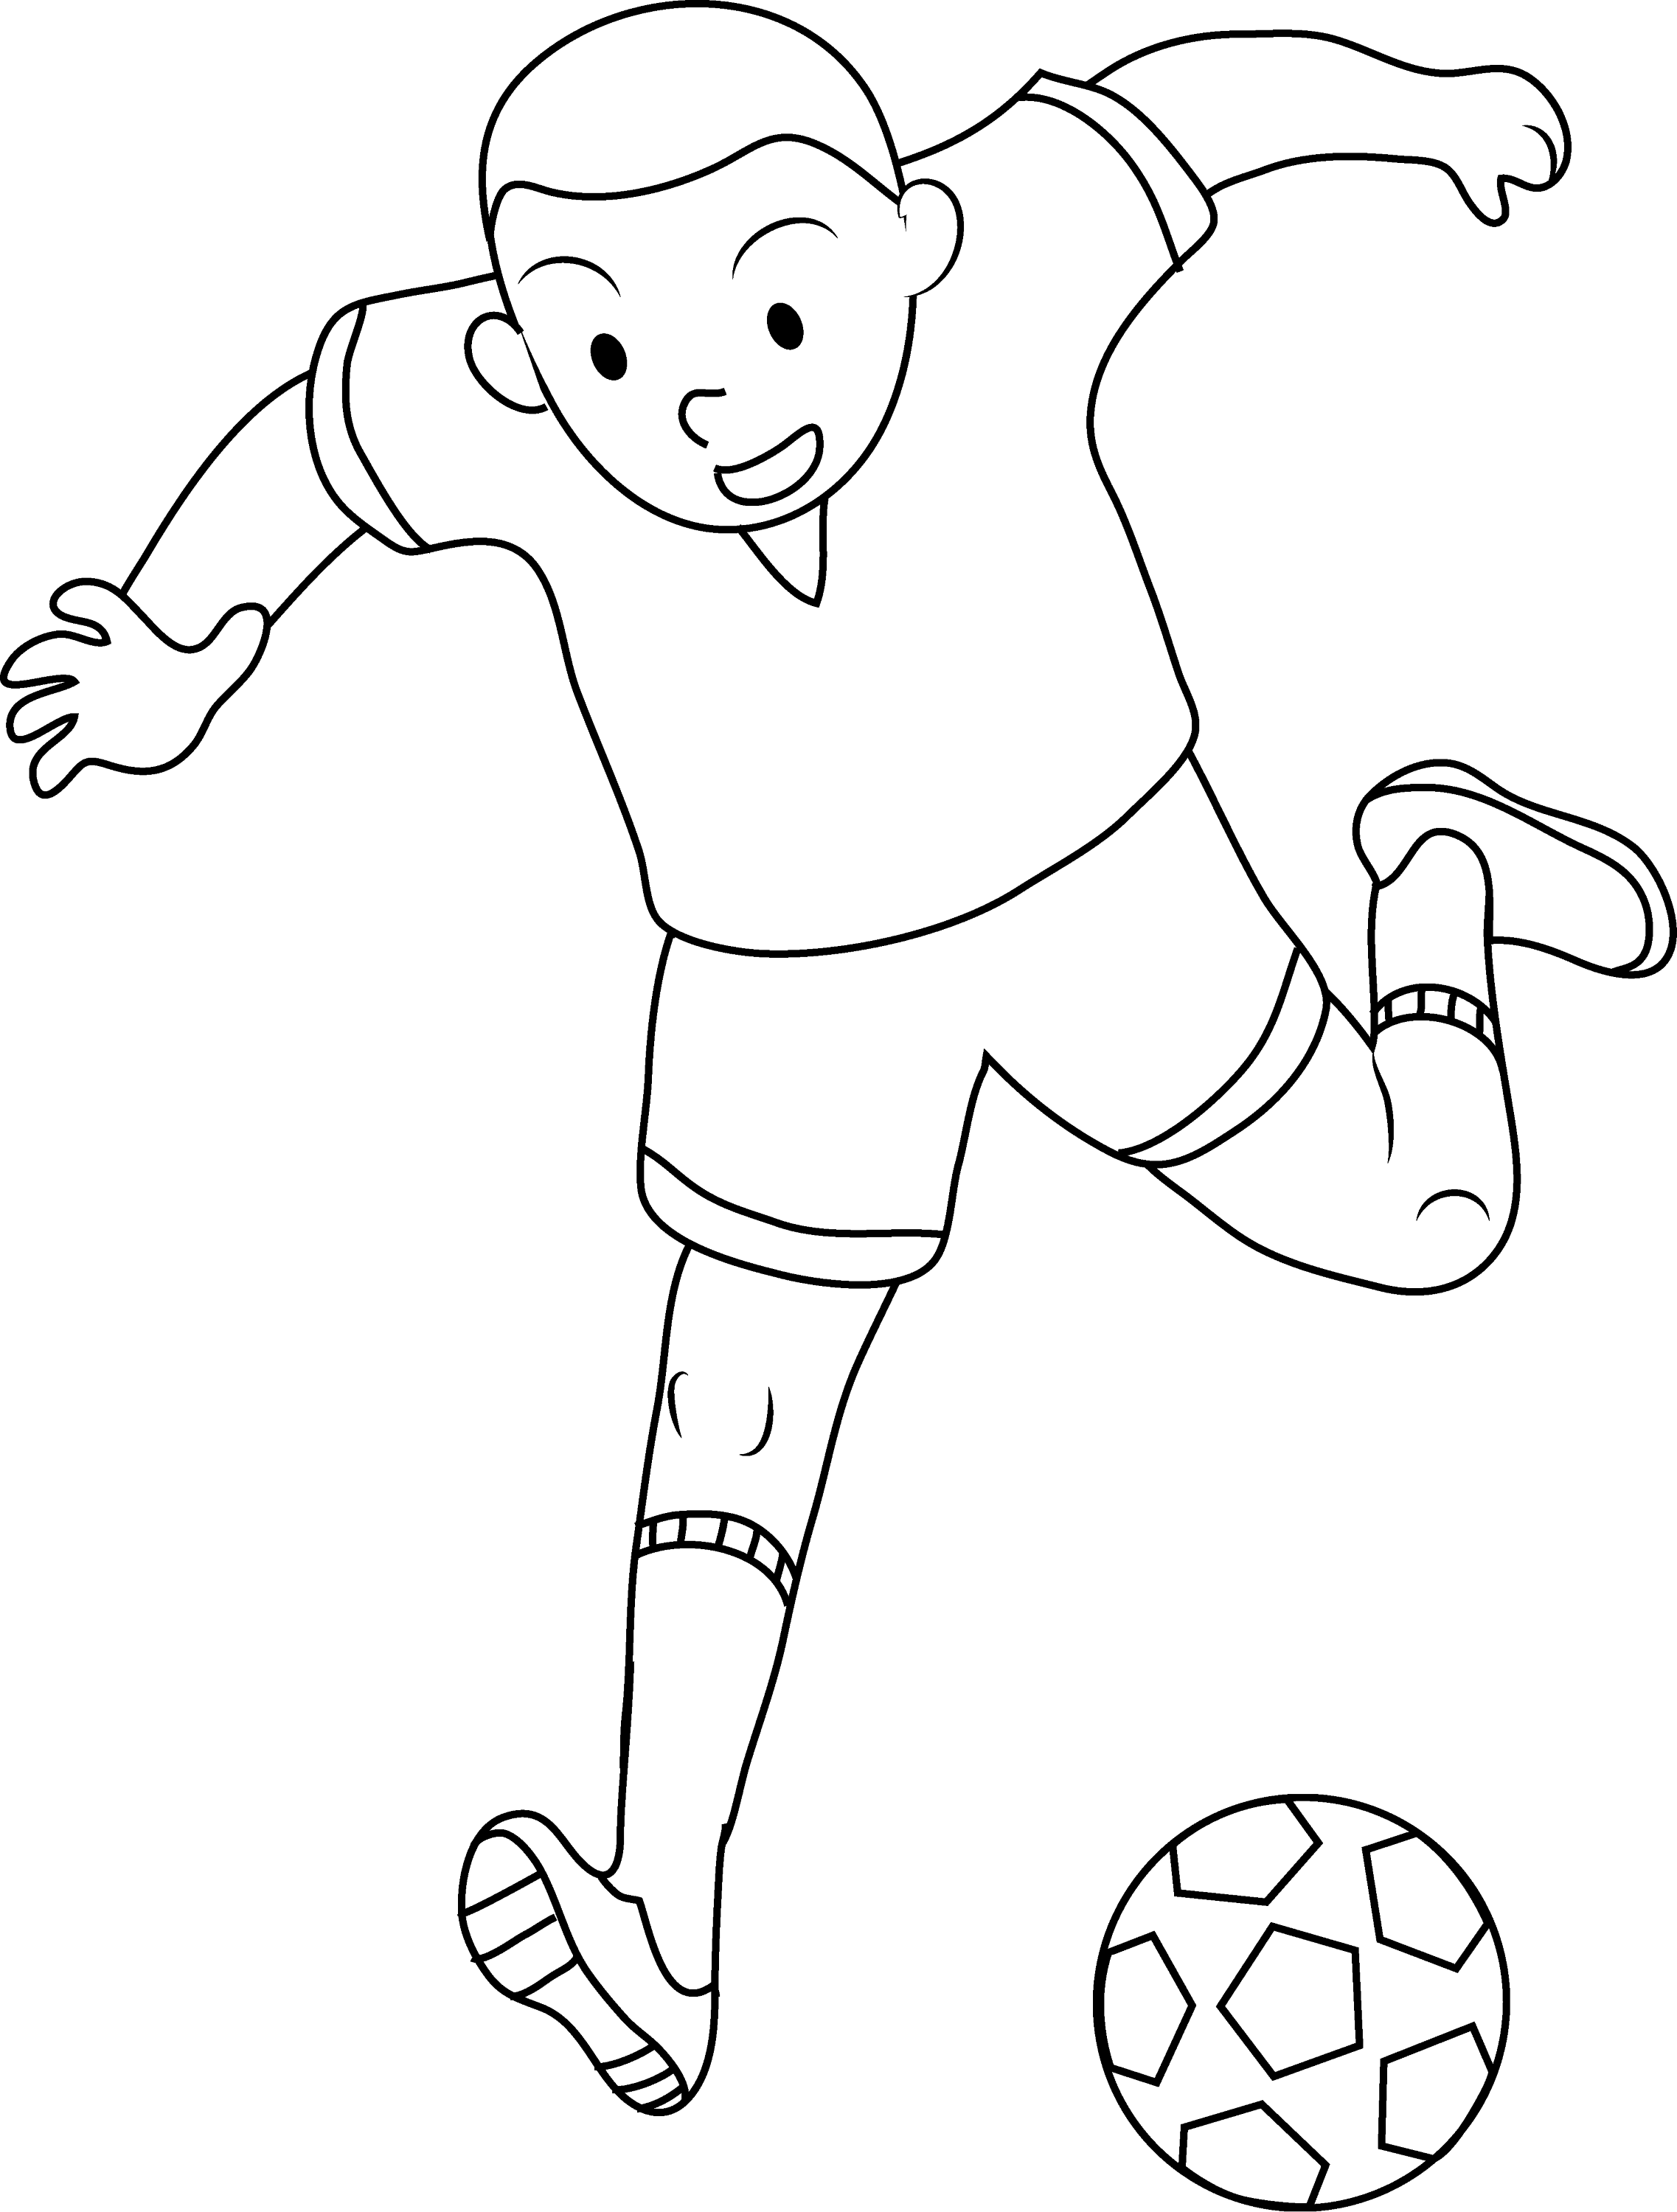 Coloring Page of Boy Playing Soccer - Free Clip Art